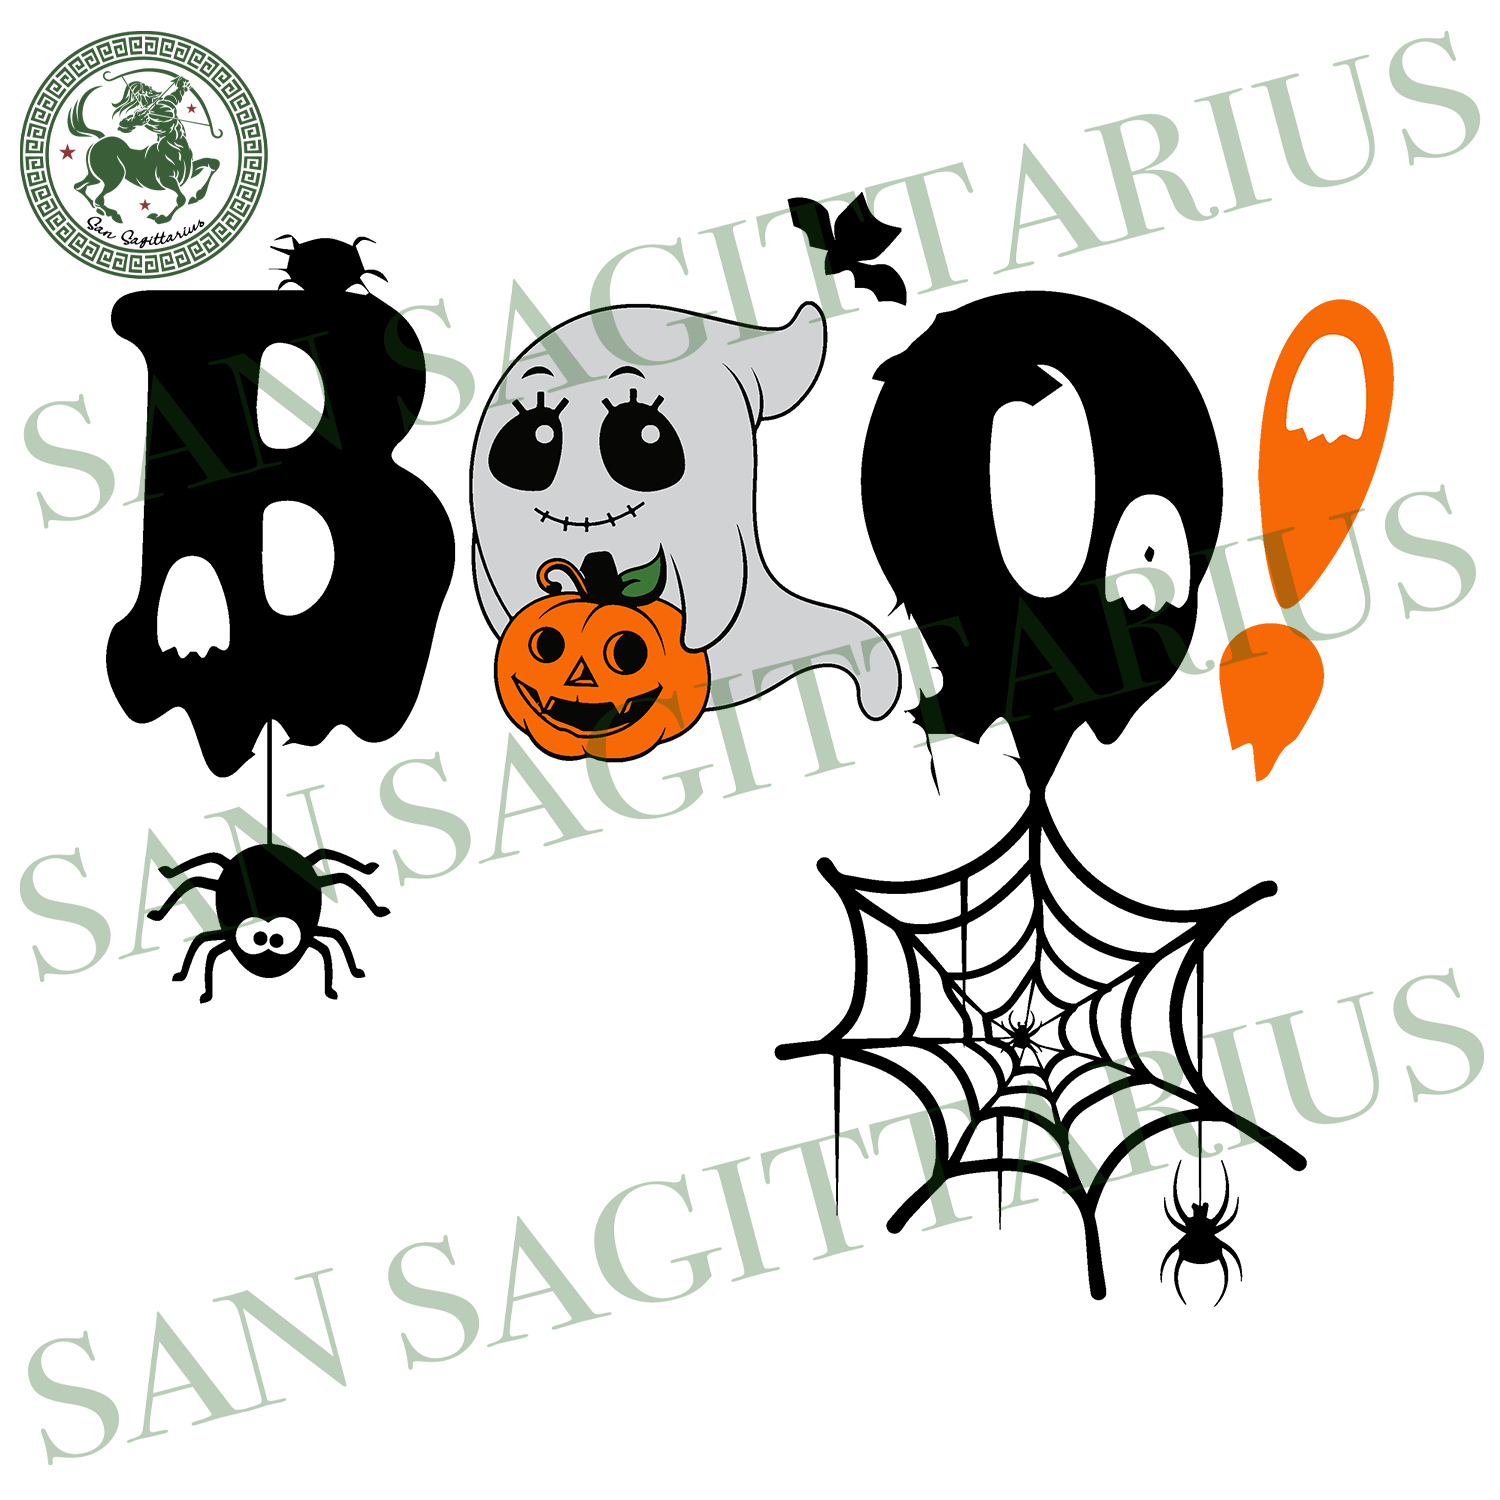 Boos And Pumpkin, Halloween Svg, Boos Svg, Pumpkin Svg, Spider Svg, Baby Spider, Halloween Spider, Cute Pumpkin, Happy Halloween, Halloween Party, Halloween Shirt, Boos, Baby Boo, Boo Shirt,